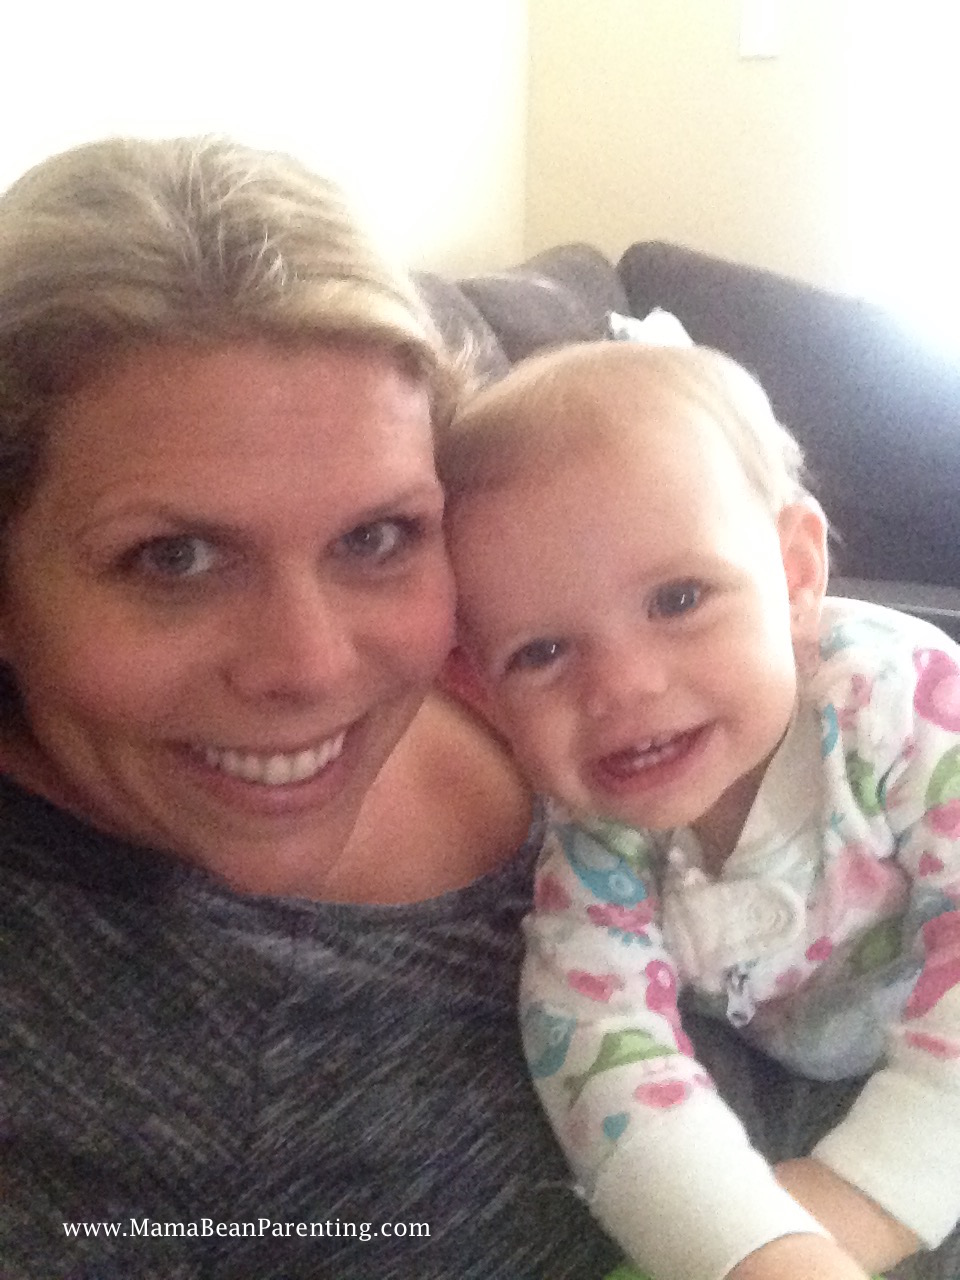 Mama Bean Parenting: Breast Milk at Daycare - One Mom's Fight